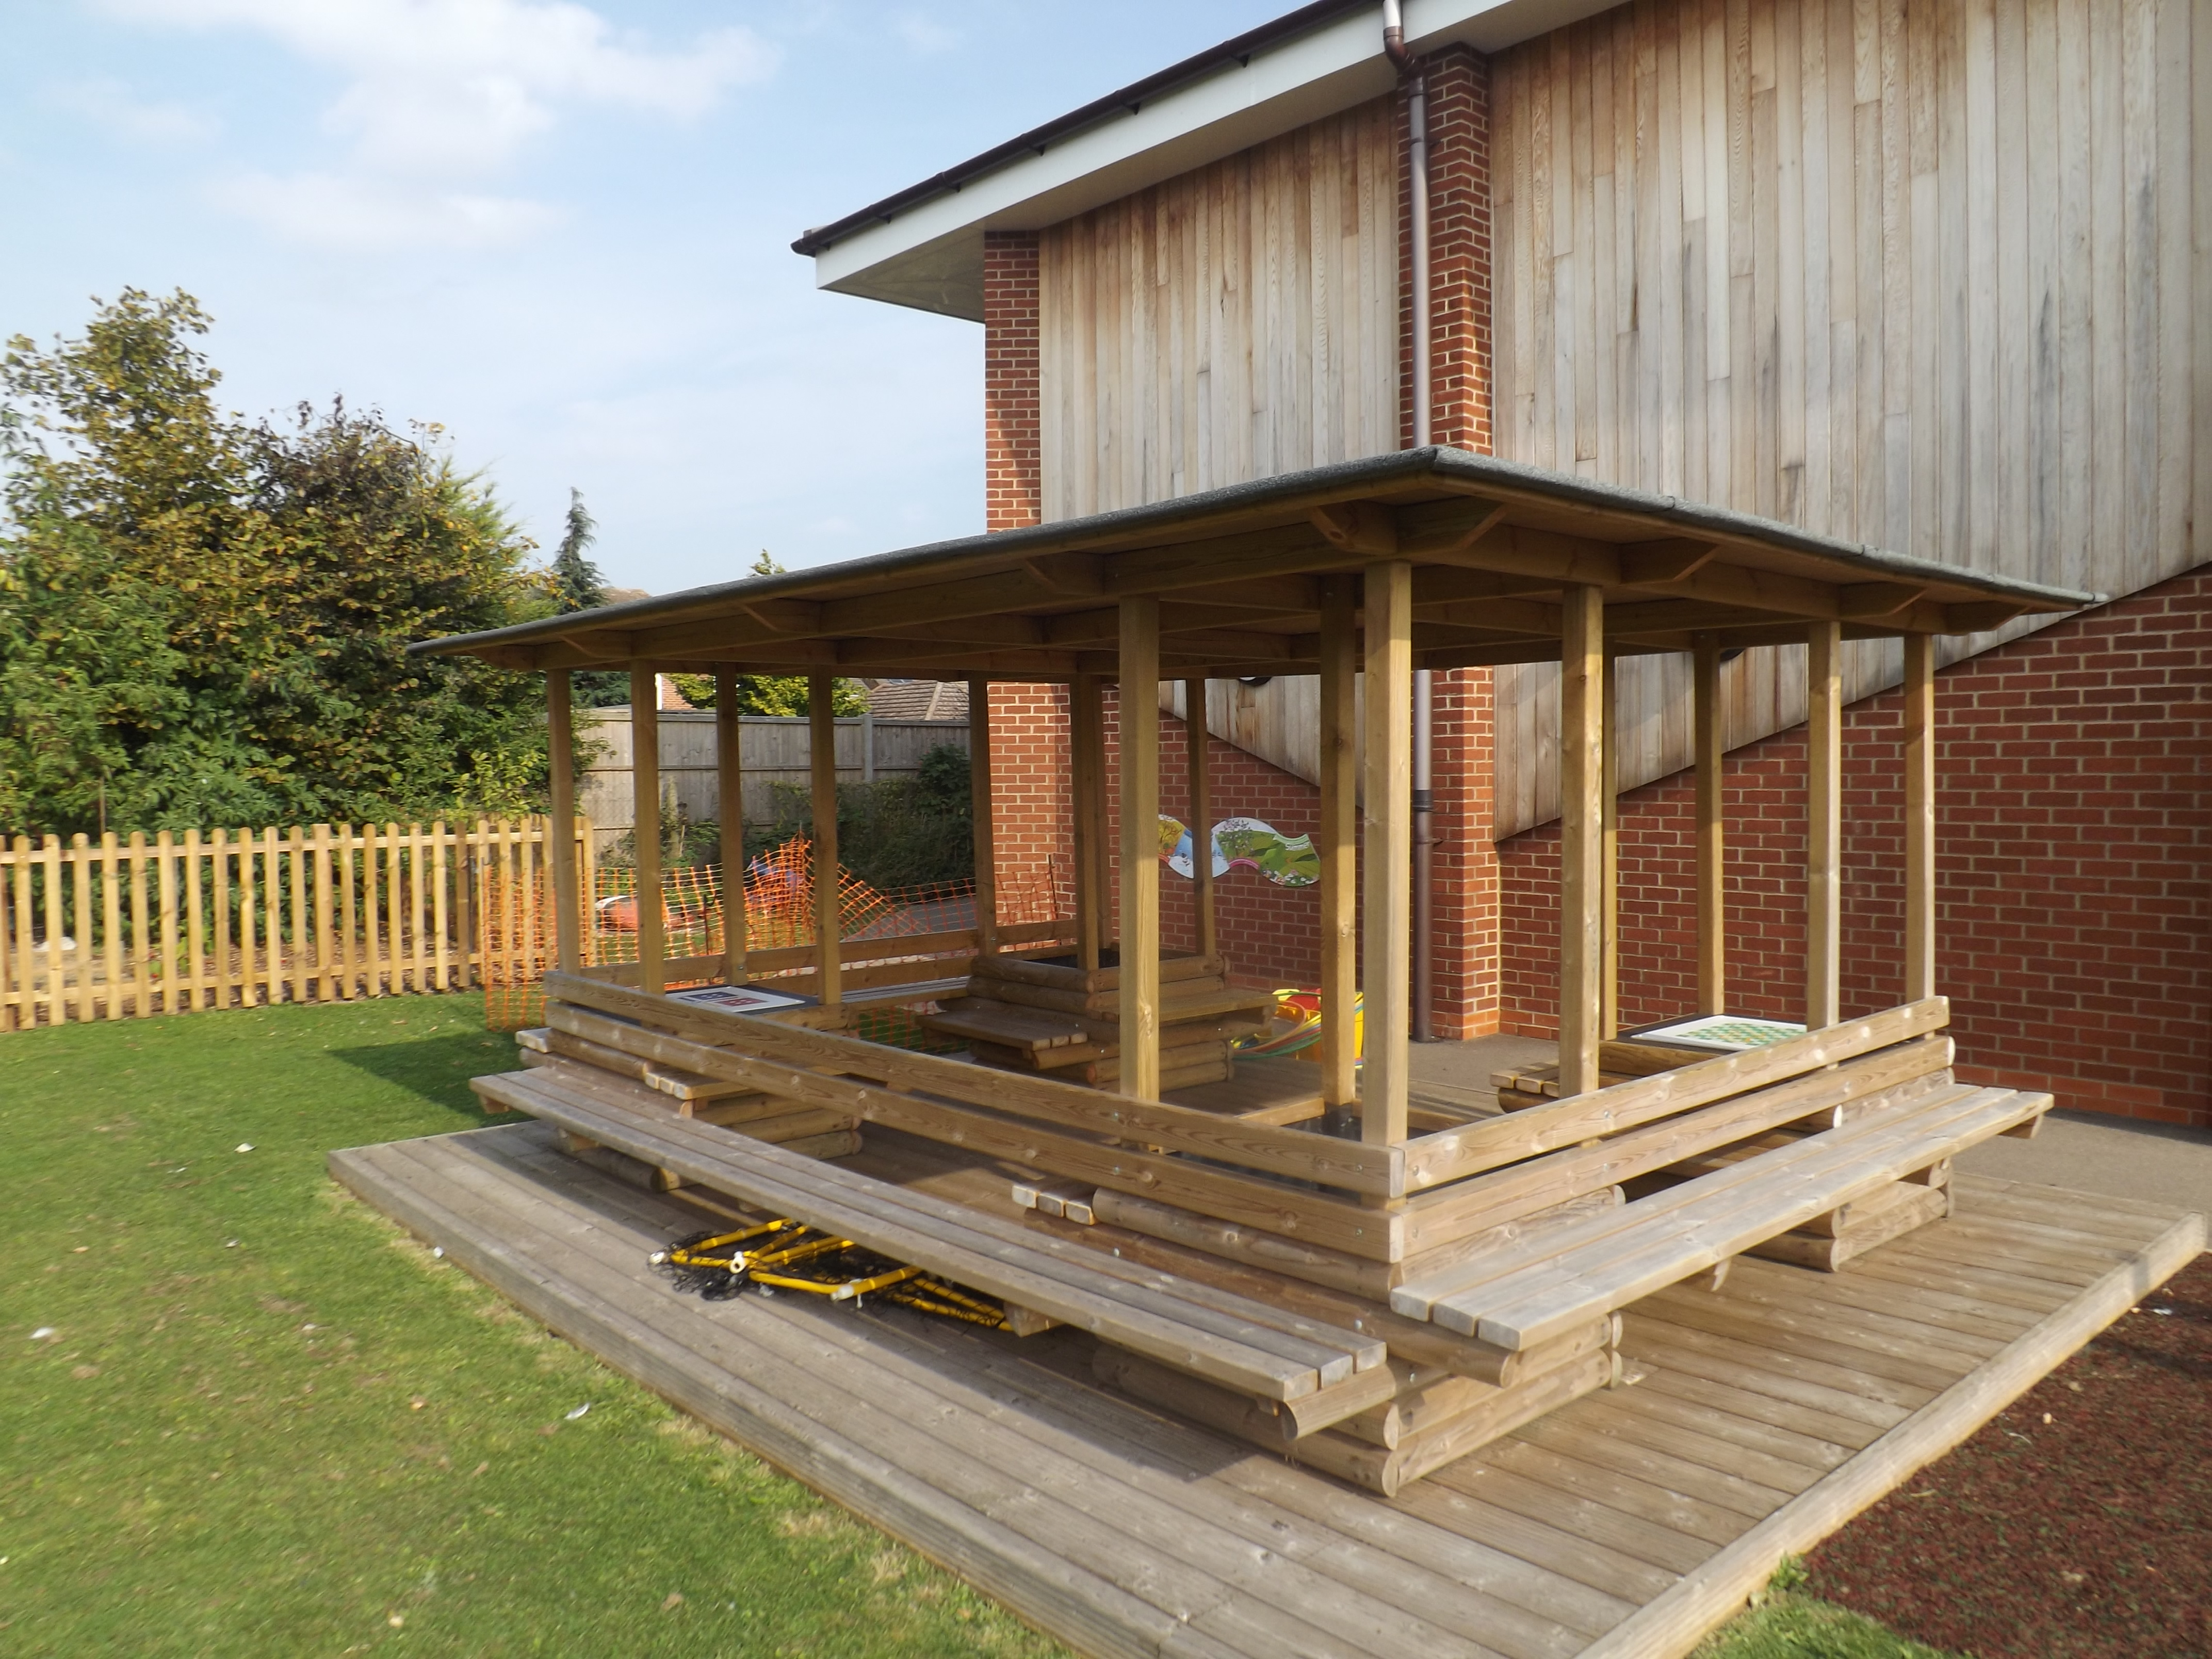 General - Outdoor classroom Gazebo